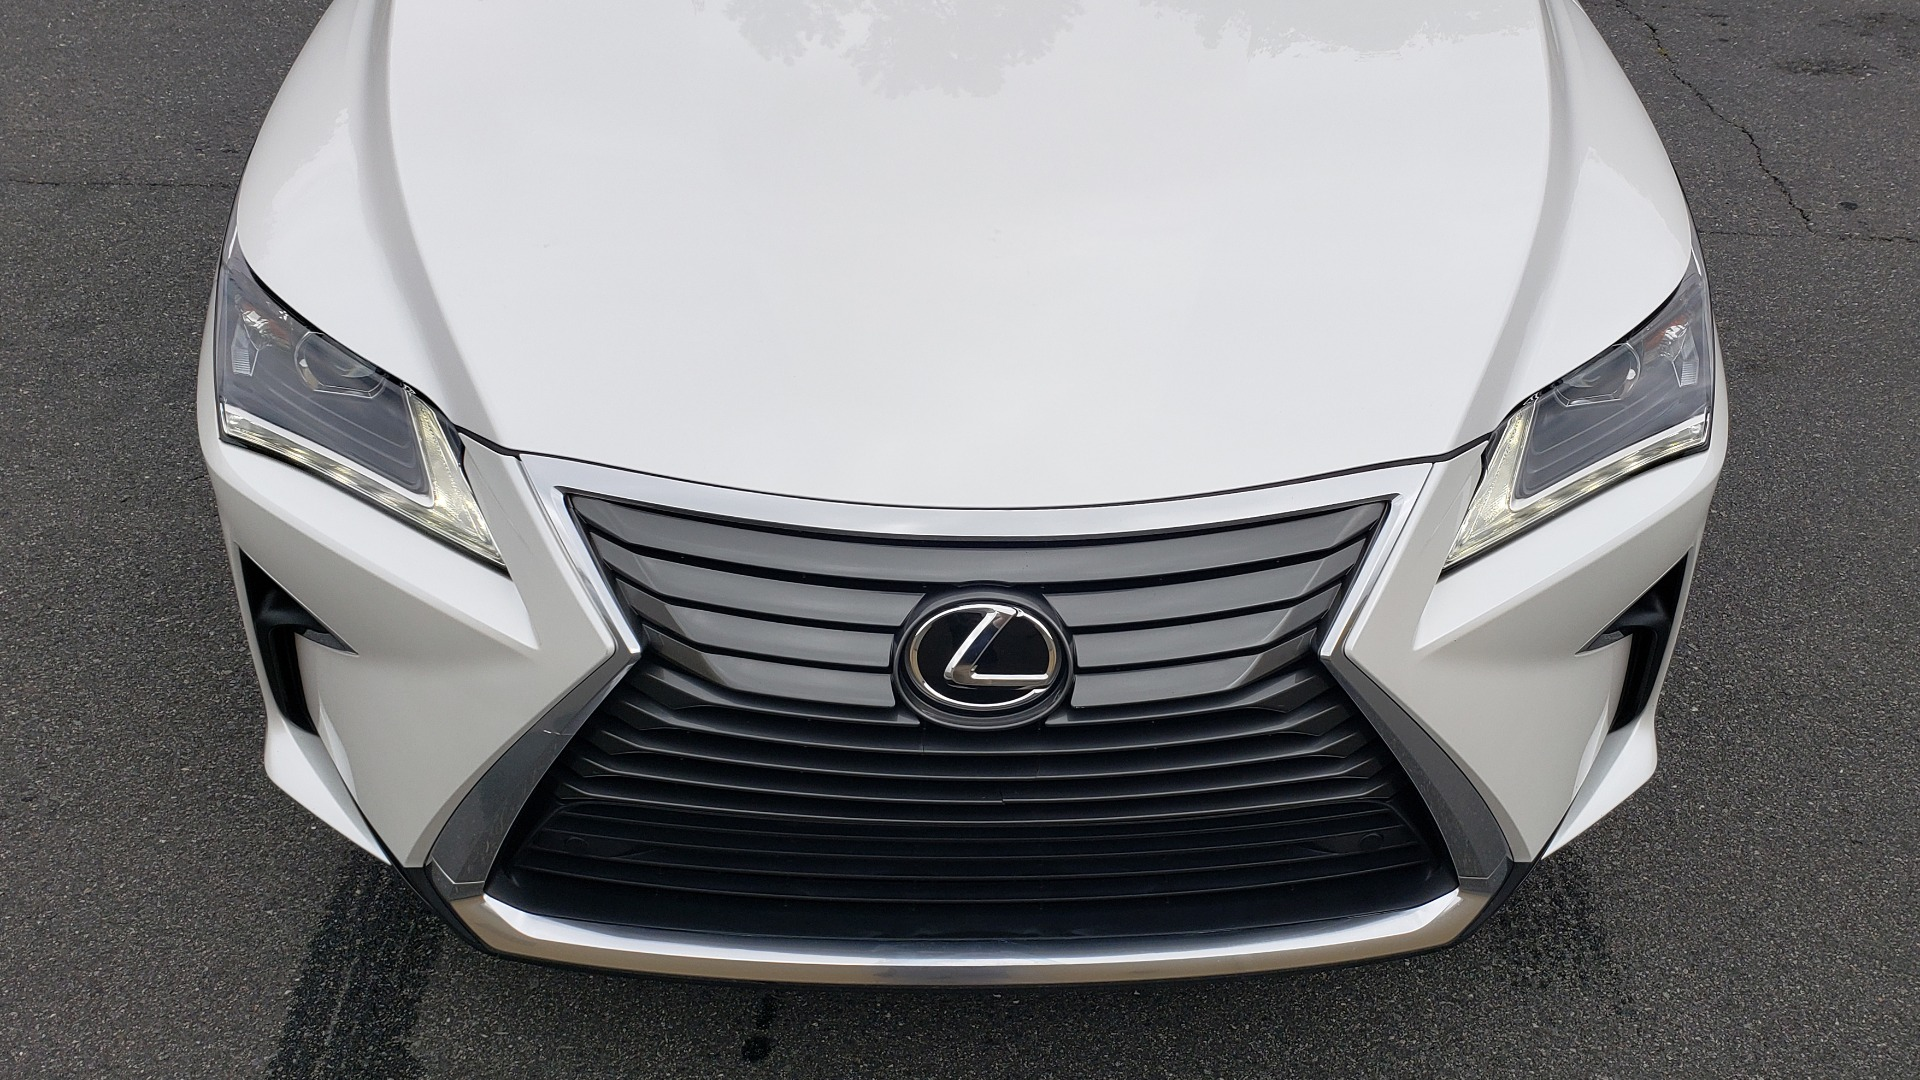 Used 2016 Lexus RX 350 FWD / 4-DR / 3.5L V6 / 8-SPD AUTO / LEATHER / REARVIEW for sale $31,995 at Formula Imports in Charlotte NC 28227 23